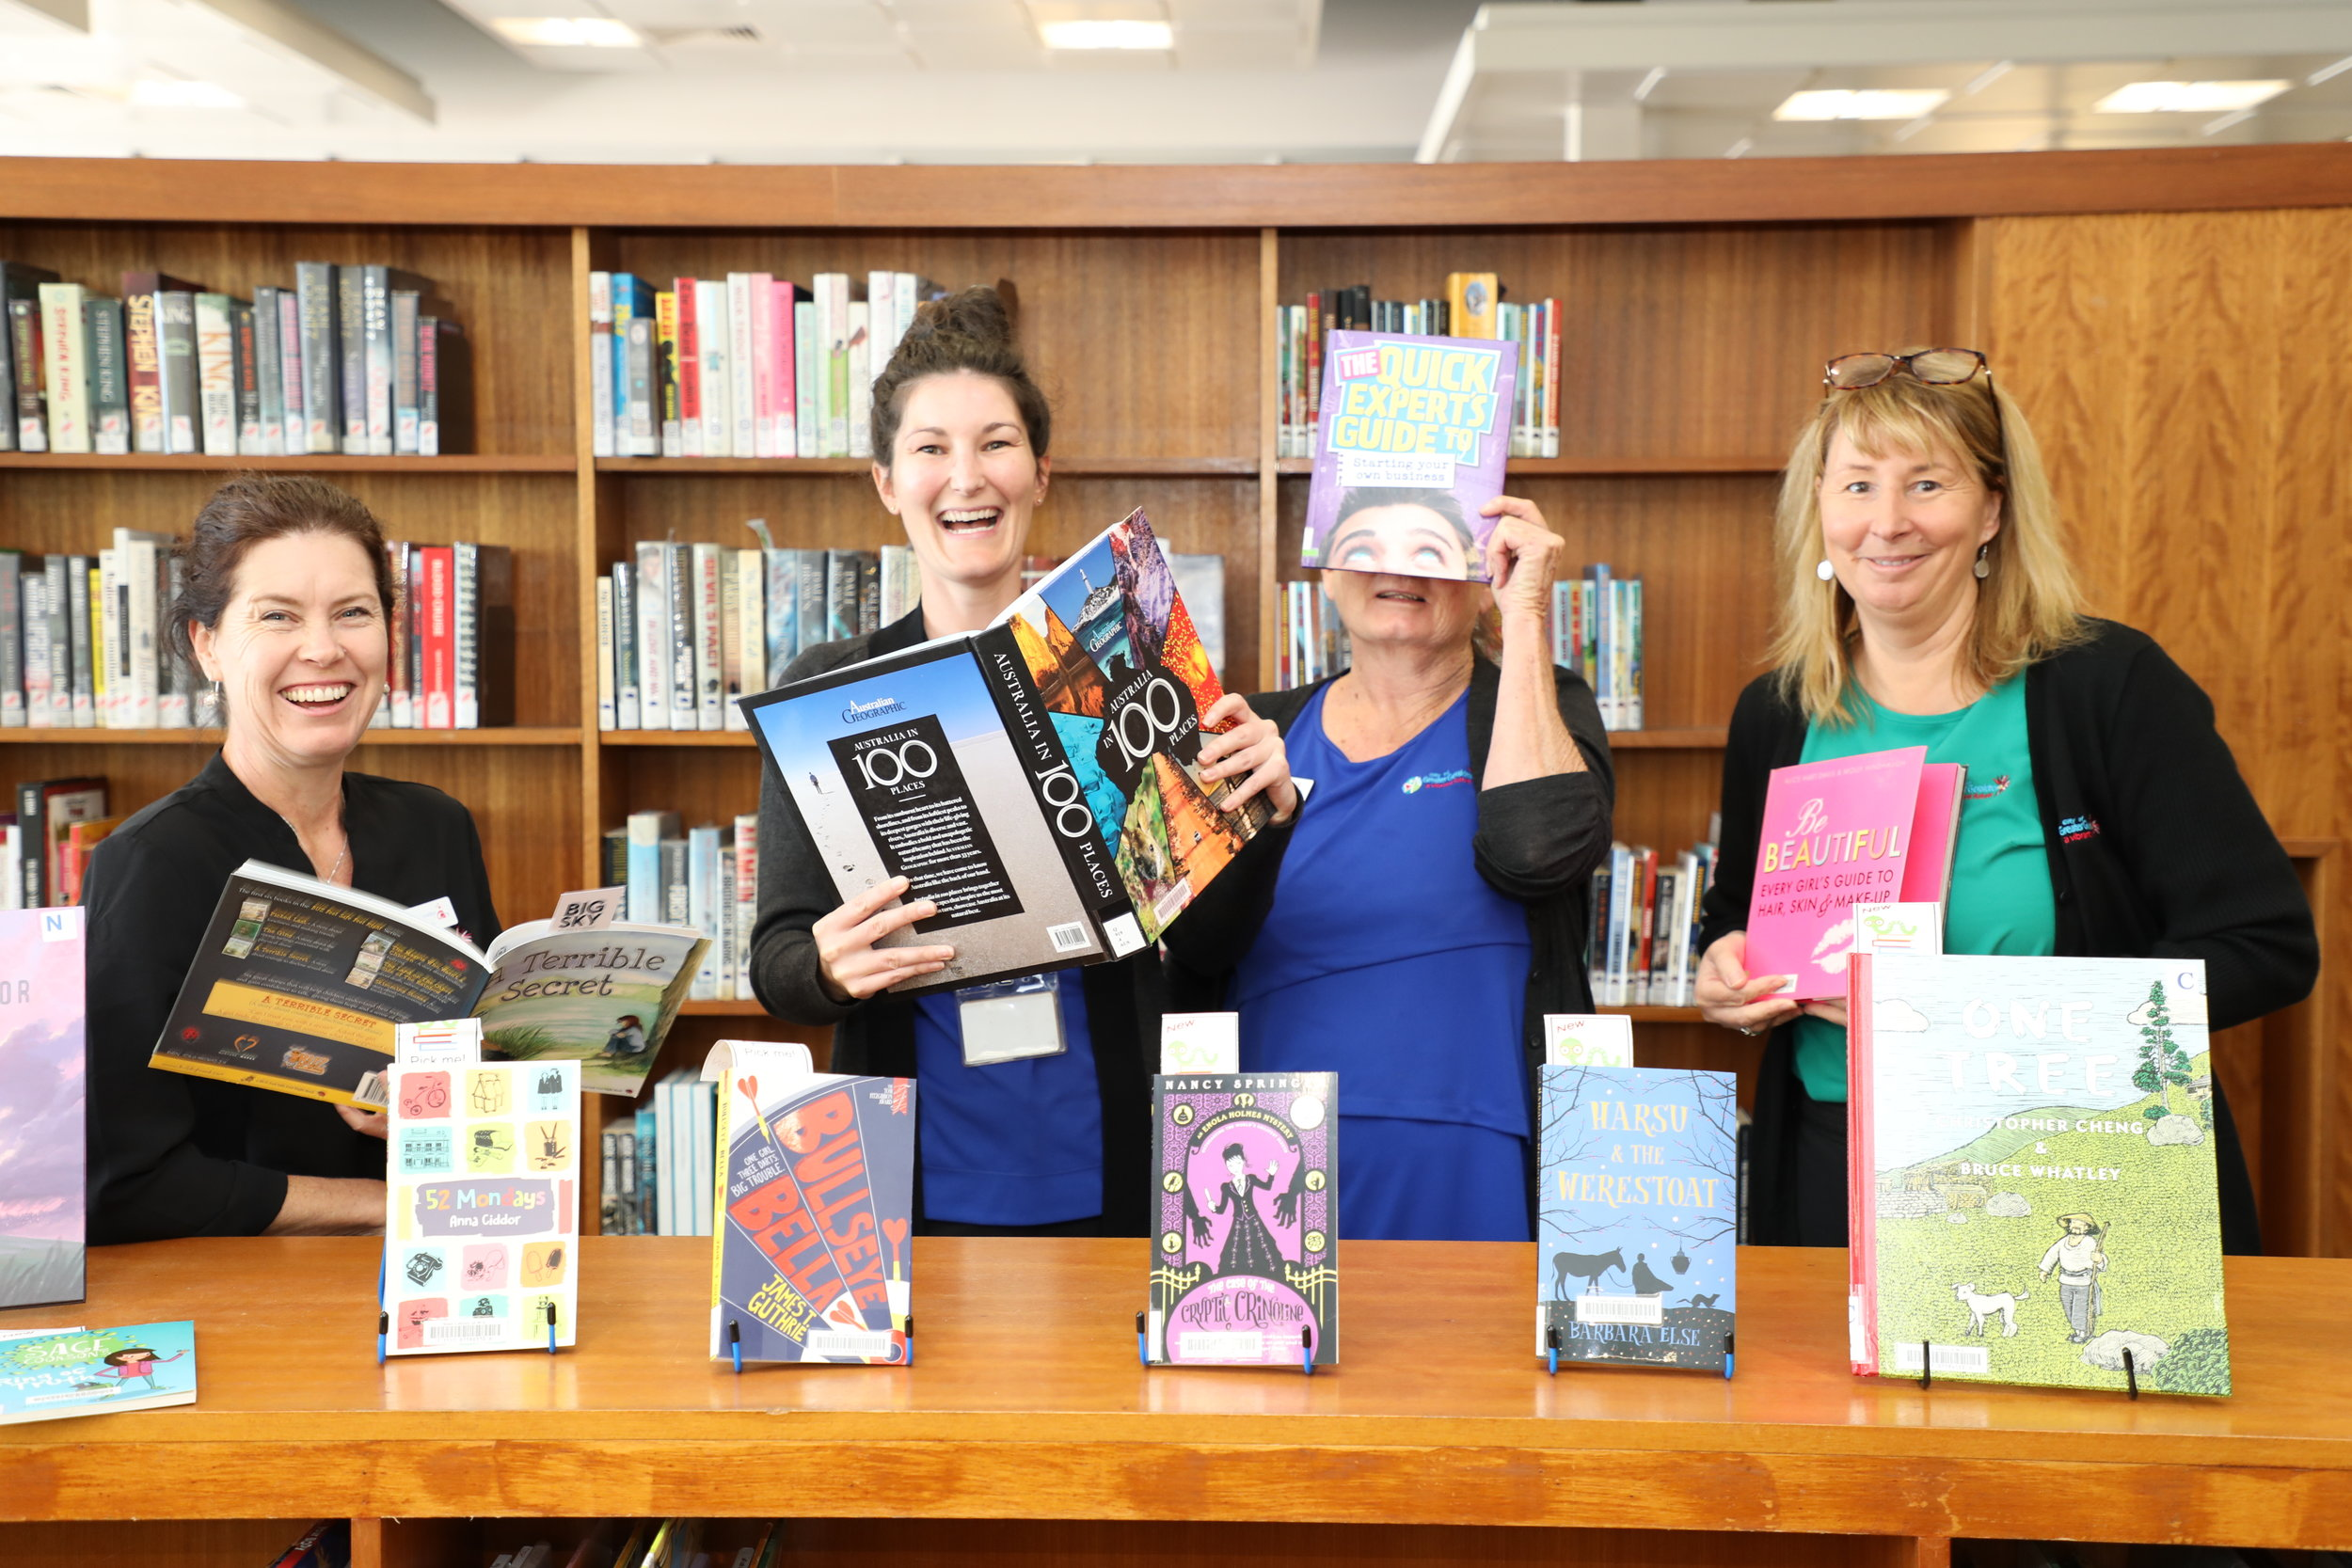 Library staff Deborah Barnett, Lorin Cox, Jenni Hargrave and Trudi Cornish are gearing up for the revamp.